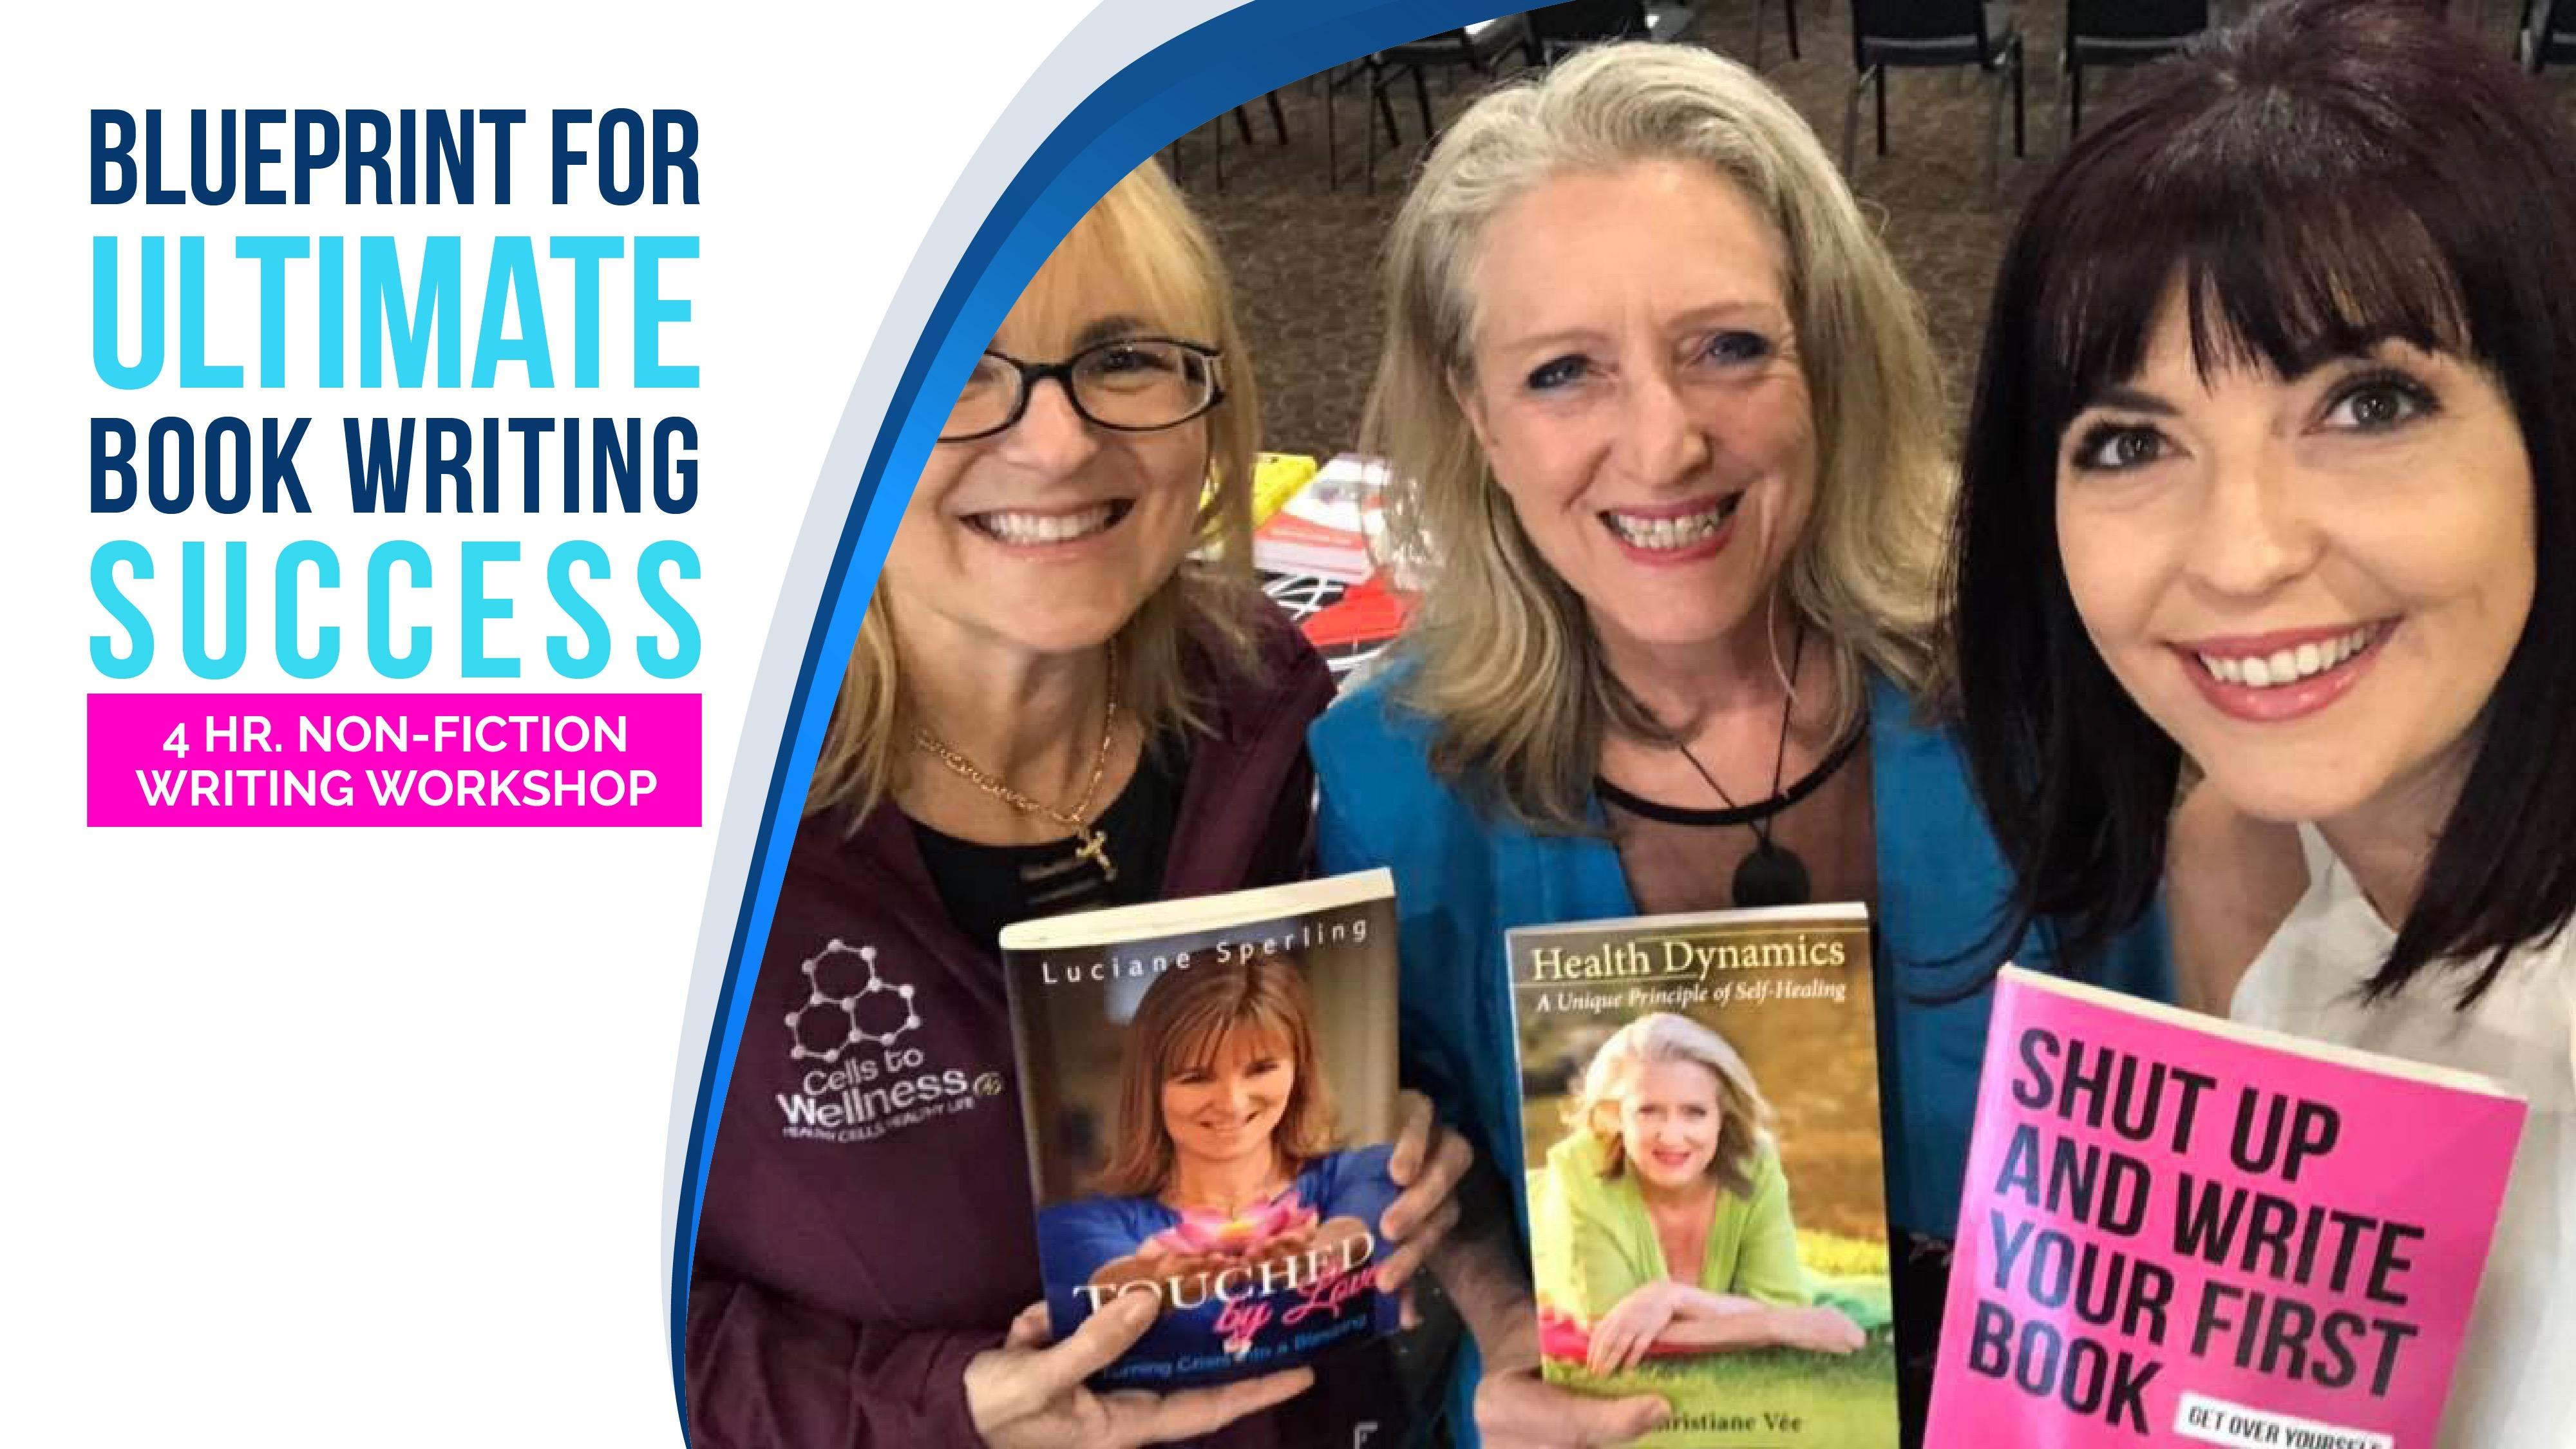 Ultimate 48 Hour Author's Non-Fiction Book Writing Seminar - Tampa, FL